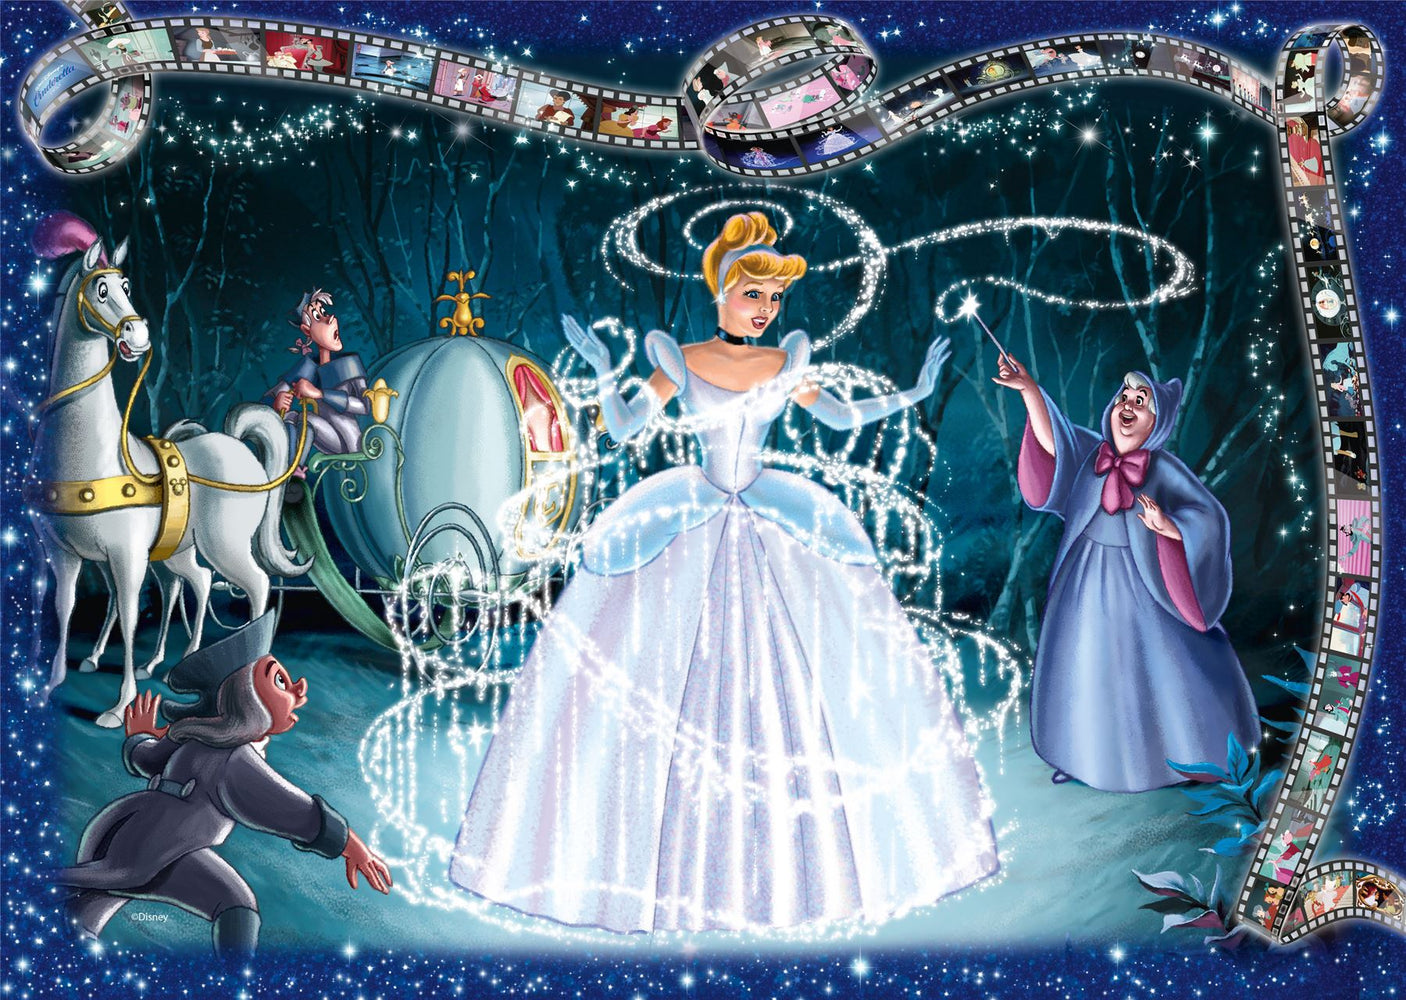 Disney Collector's Edition Cinderella, 1000 Piece Jigsaw Puzzle